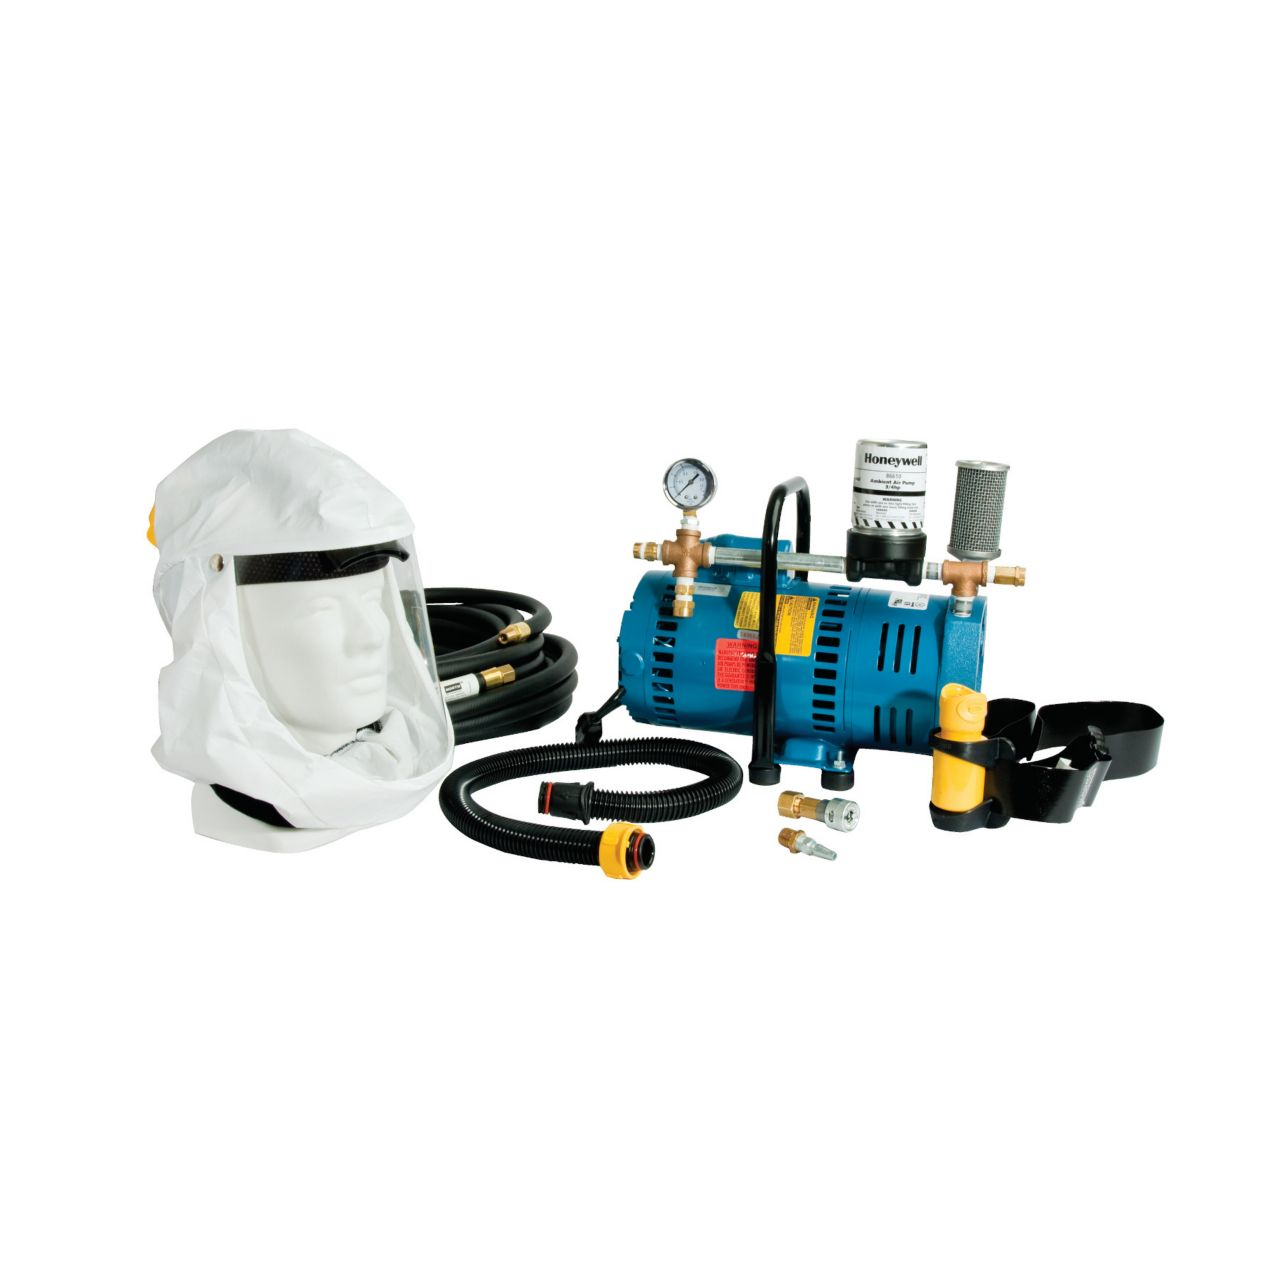 HS_ambient_air_pumps_north_appb_unconected_resp_kit